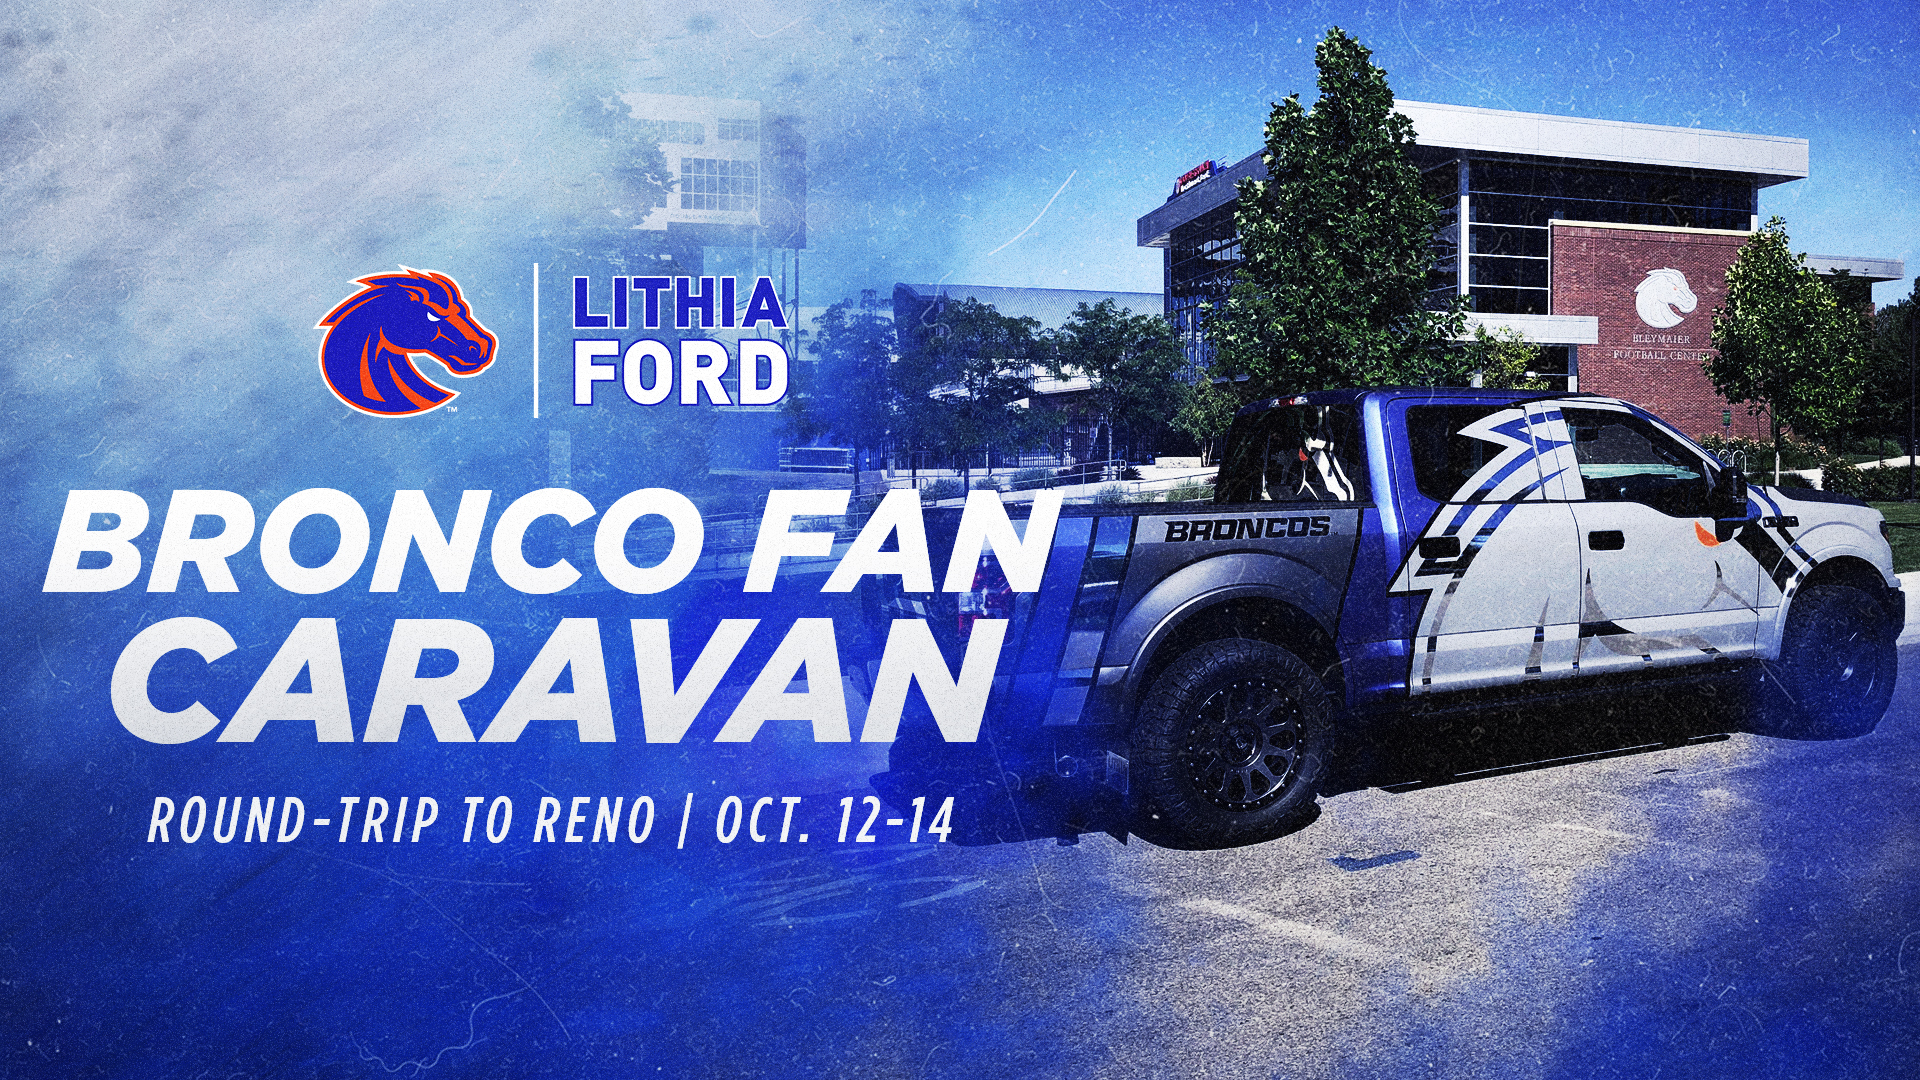 Lithia Ford Boise >> Lithia Ford Fan Caravan To Head To Reno - Official Athletic Website of the Boise State Broncos